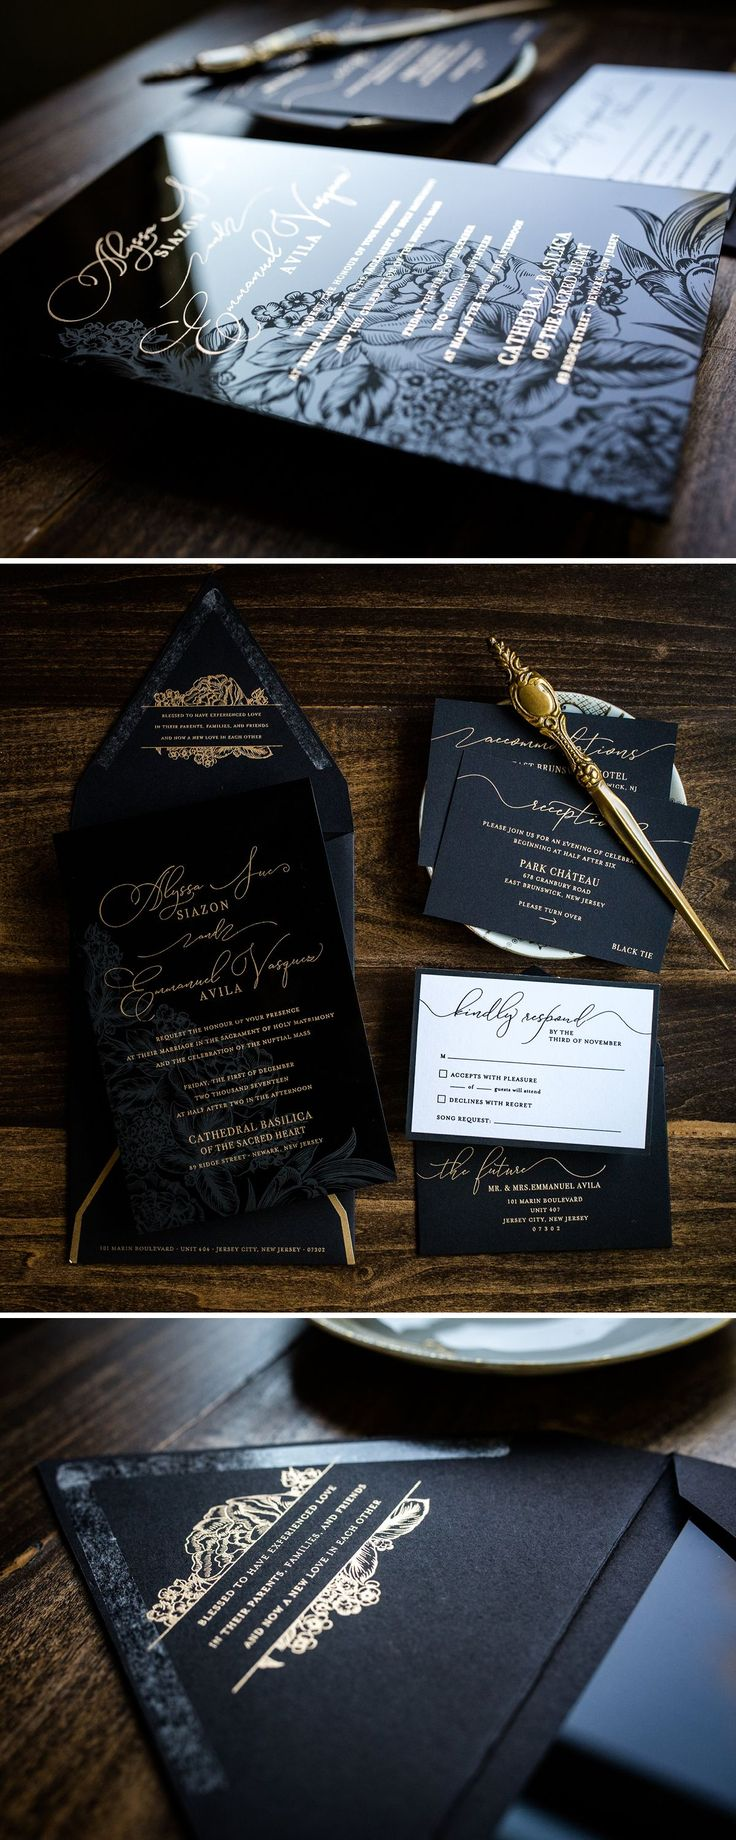 business event invitation templates%0A Penn  u     Paperie is a design studio specializing in custom invitations for  weddings  mitzvahs  corporate events  and special occasions